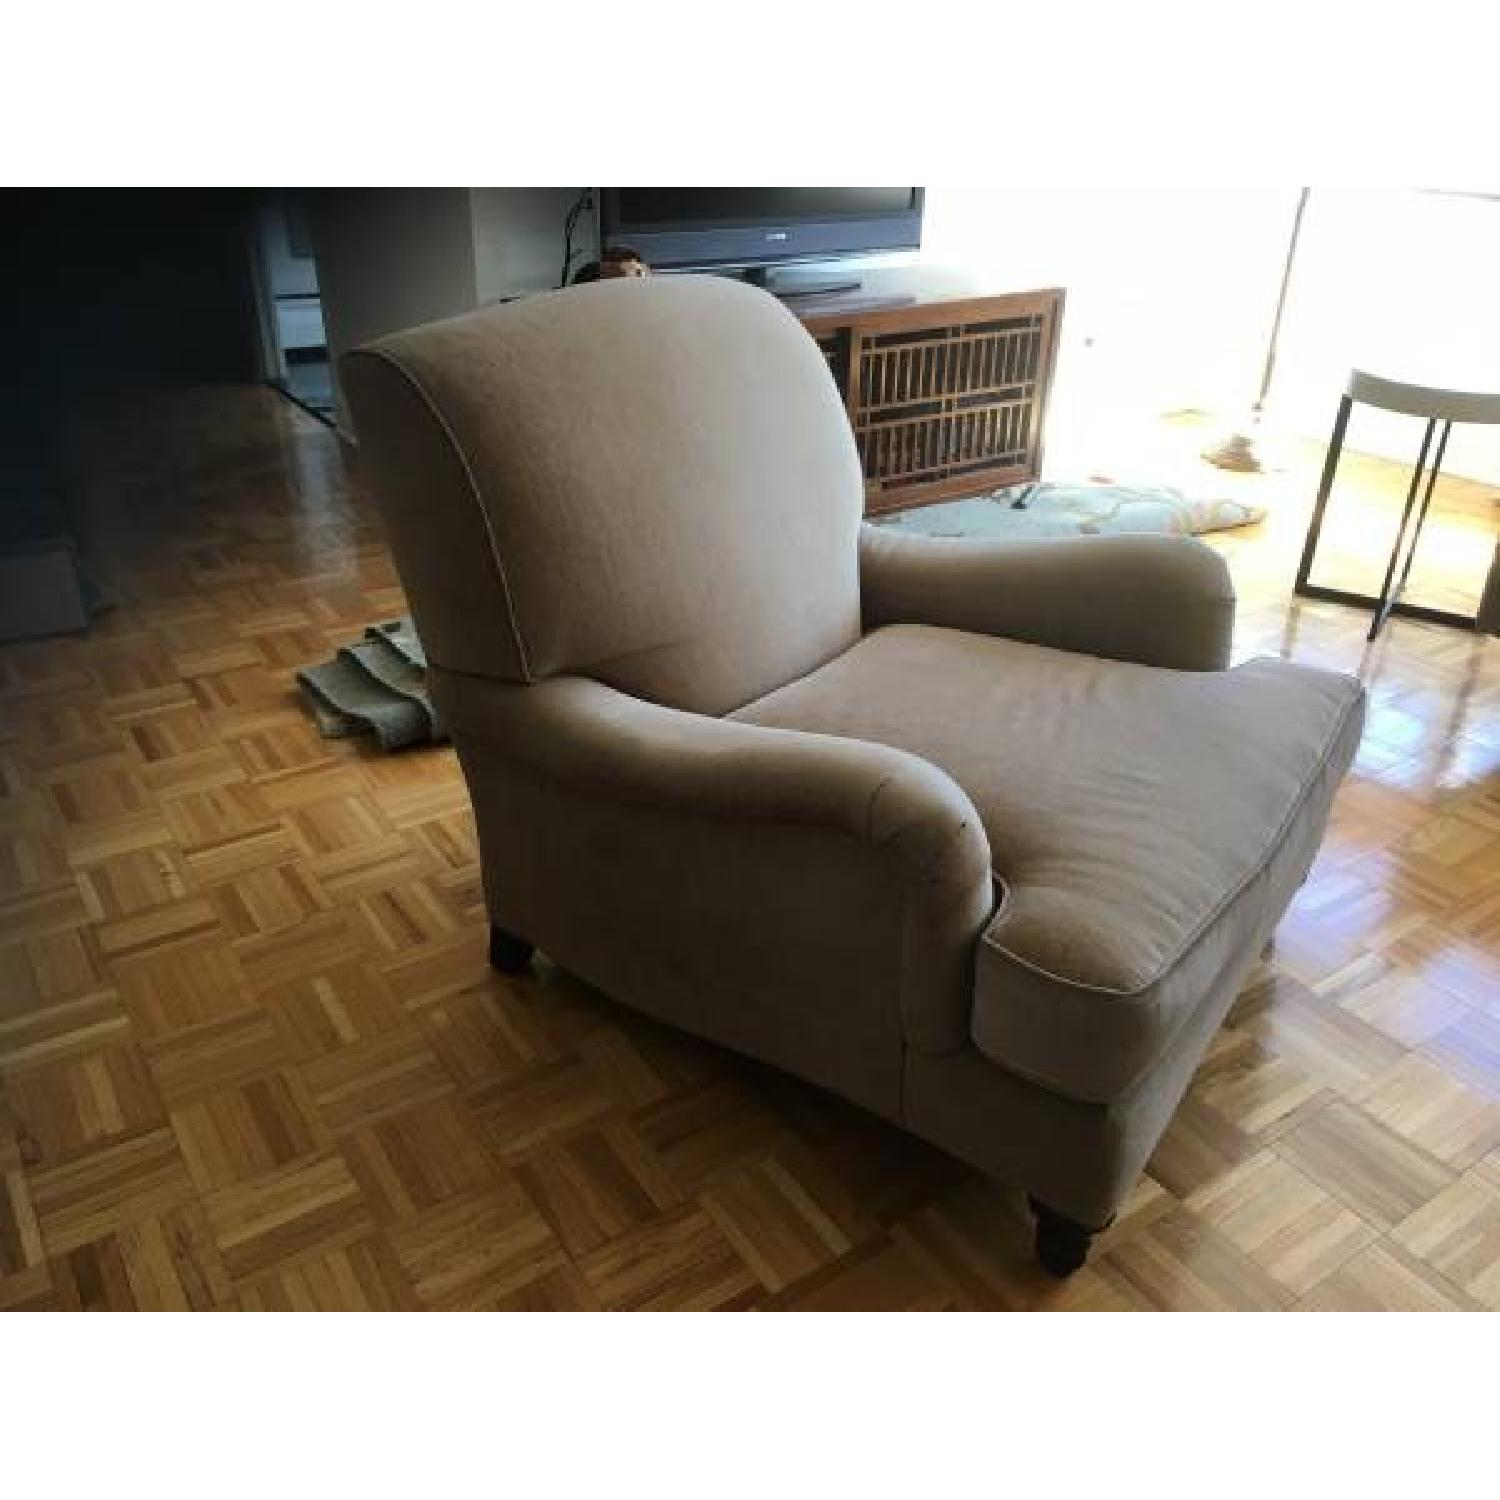 Restoration Hardware Armchair In Stone Chenille Fabric ...